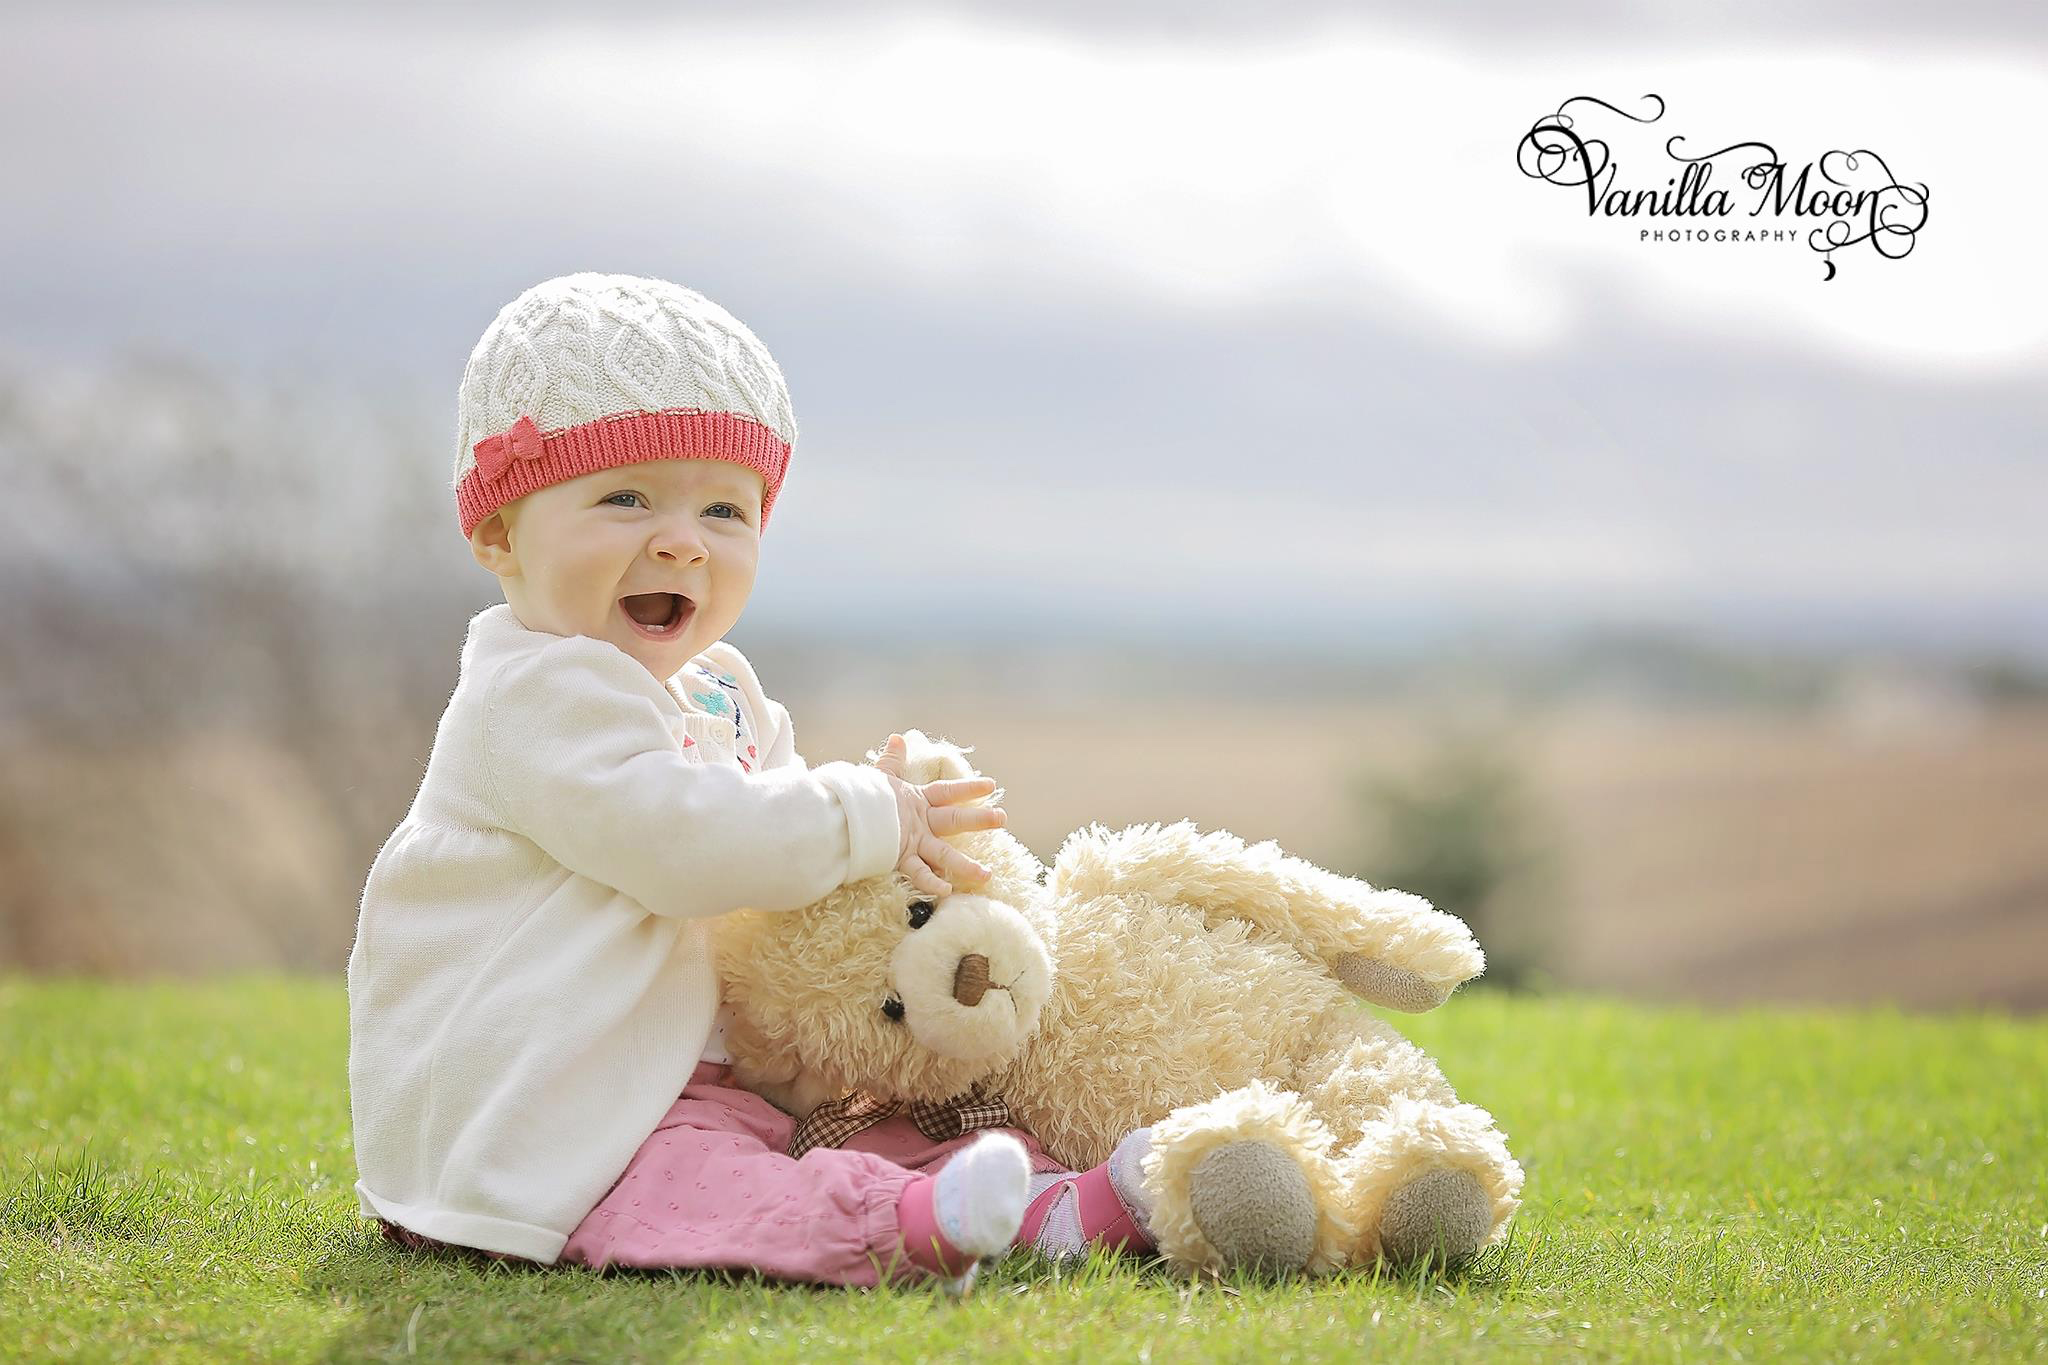 🐻We're all inclusive when it comes to photo sessions - so if you want to bring teddy to the shoot, why not?